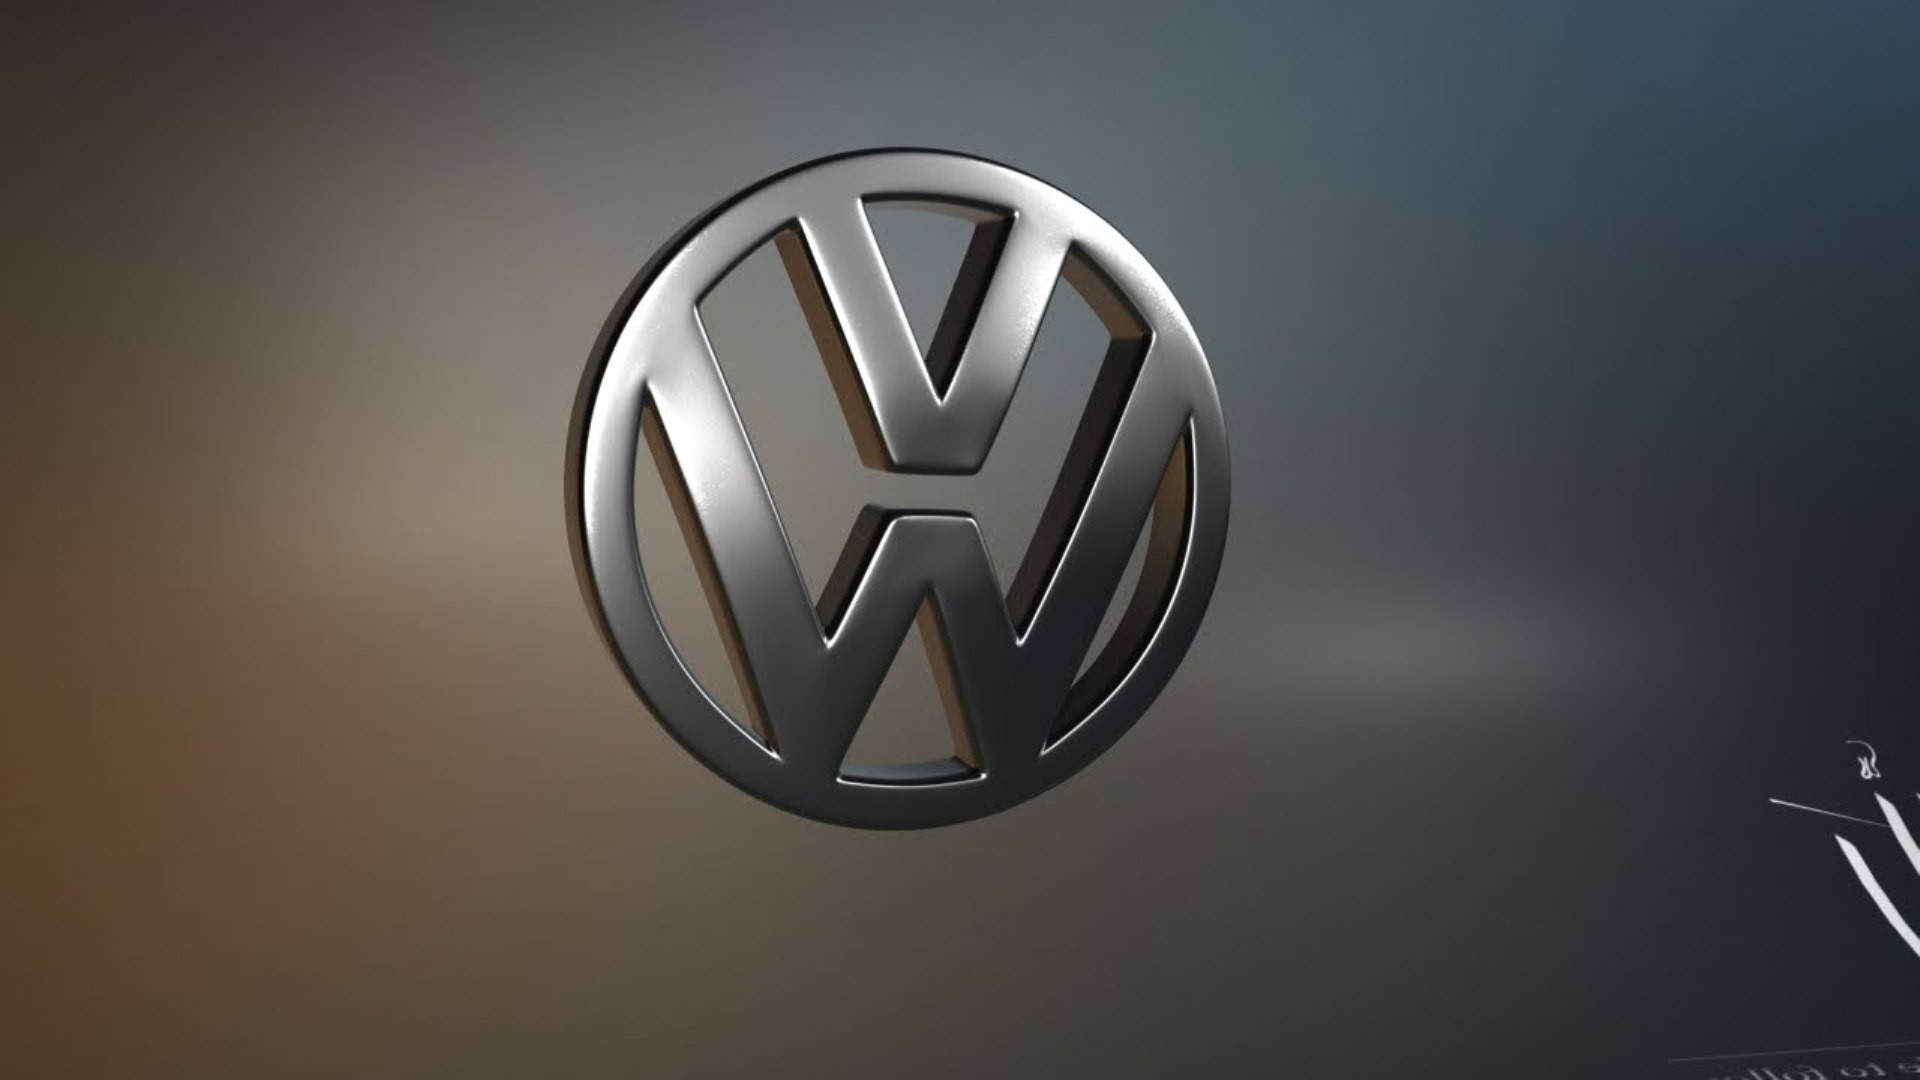 Volkswagen Wallpaper Picture #1Yw